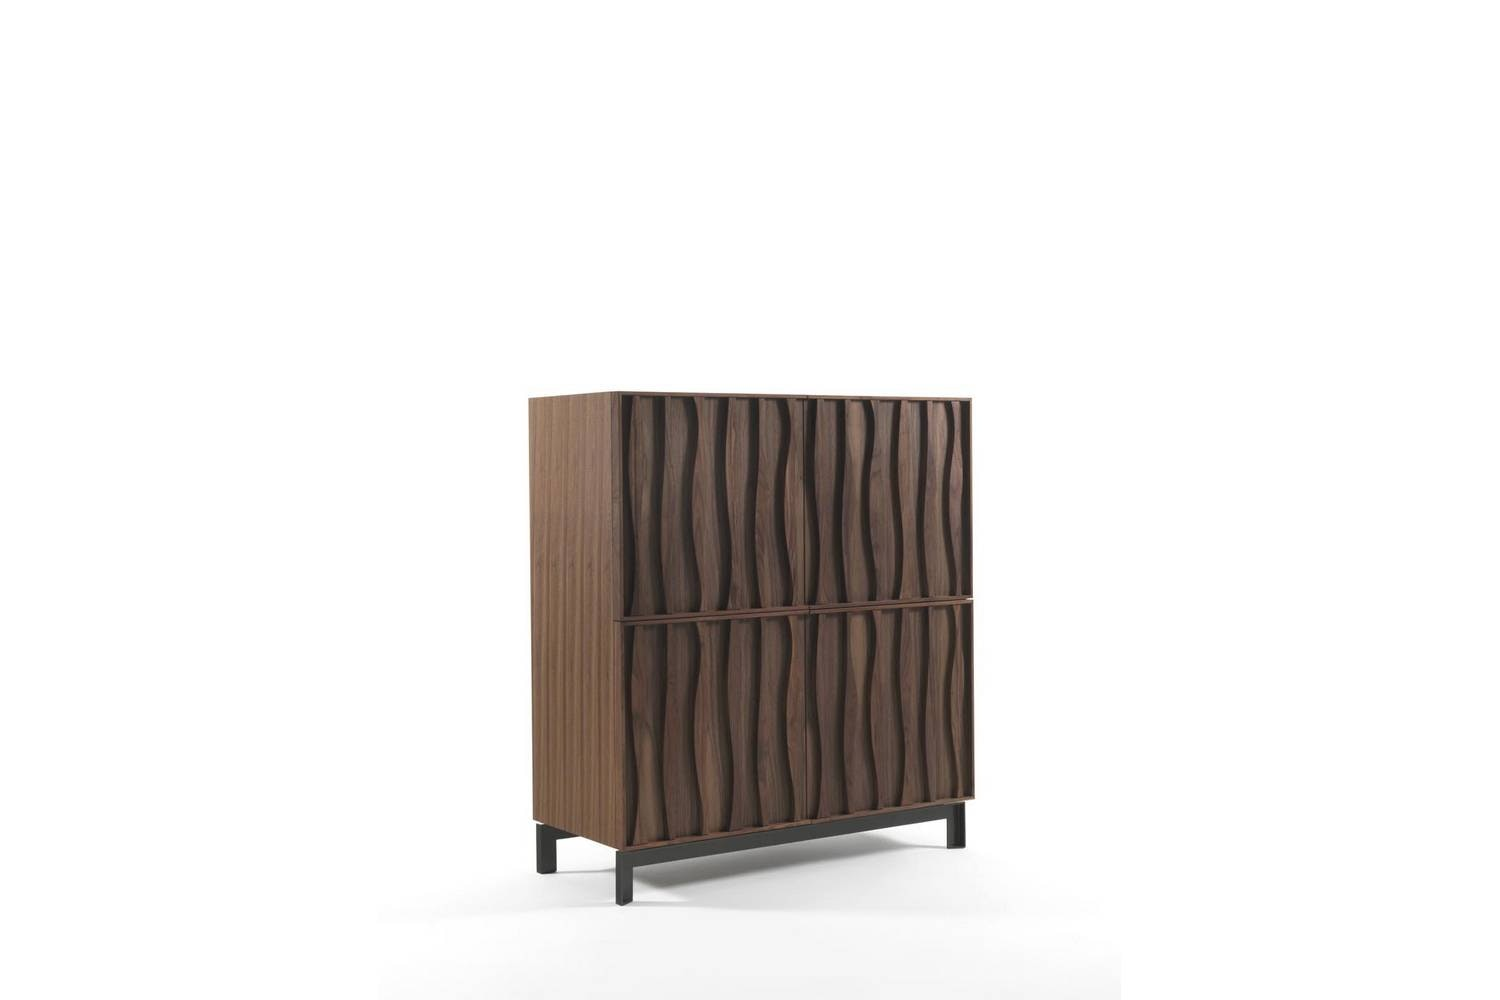 Masai High Sideboard by M. Marconato - T. Zappa for Porada